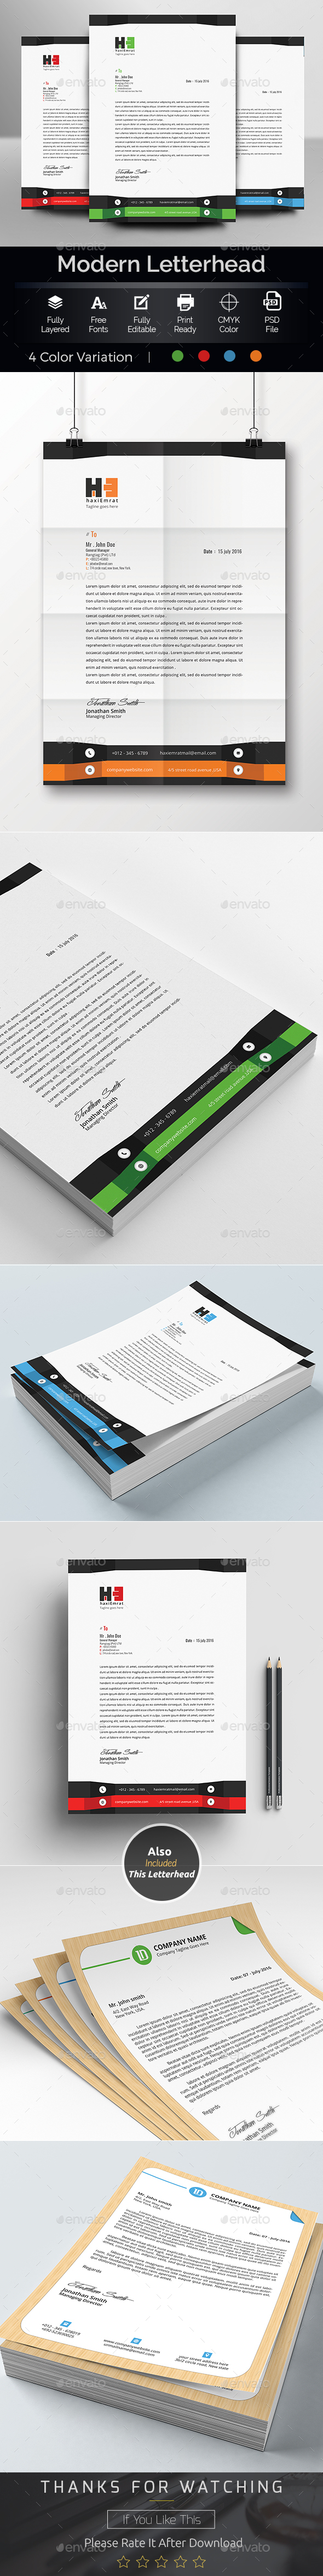 MS Word Letterhead Template - Stationery Print Templates